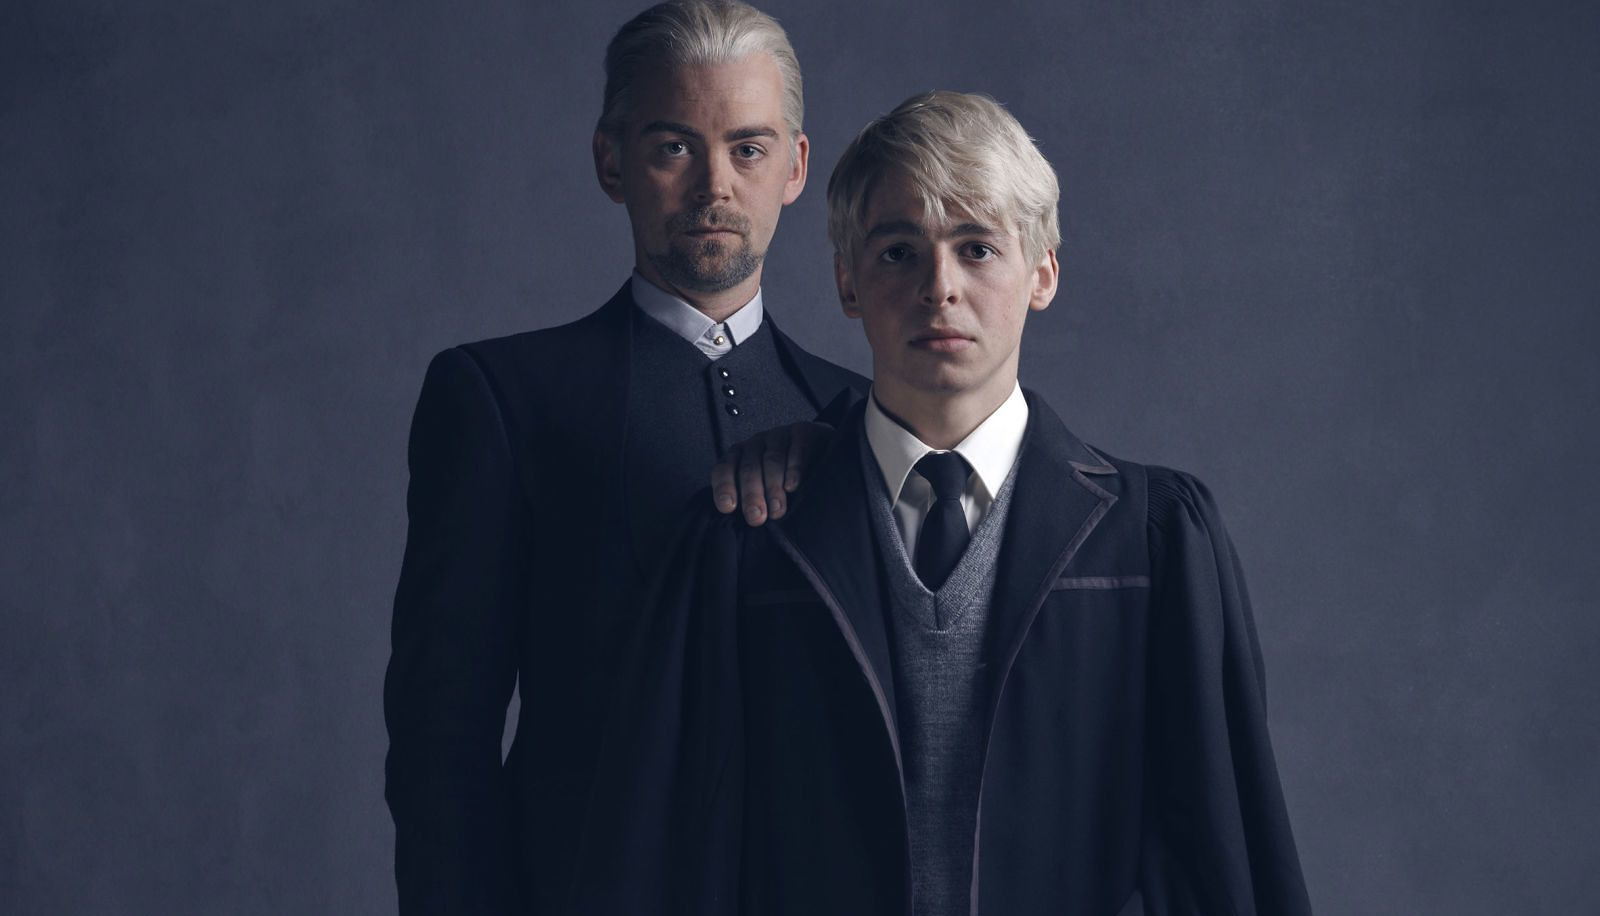 Scorpius Harry Potter and the Cursed Child